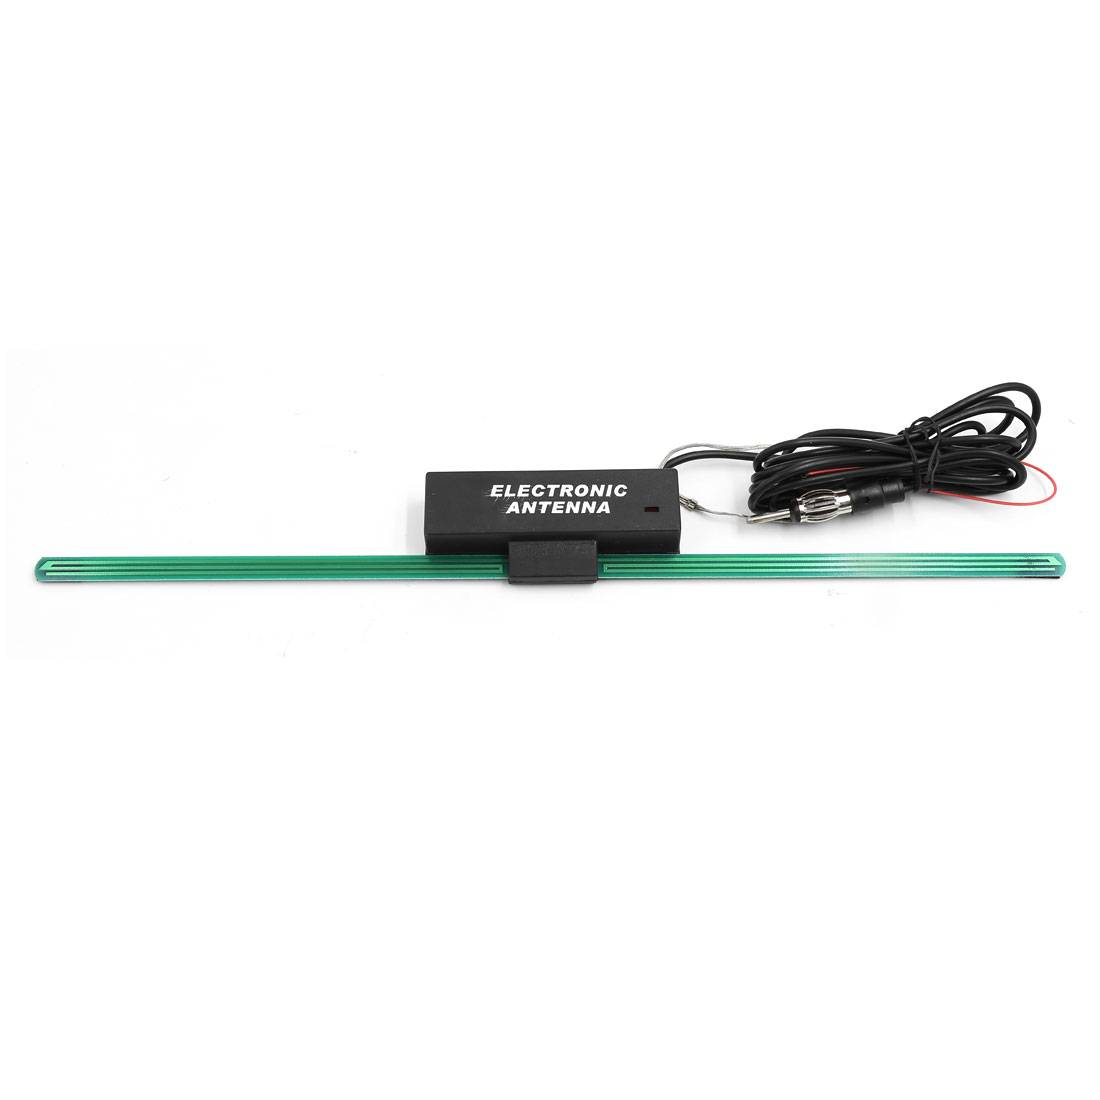 2M Cable Long Car Windshield Mounted Radio AM/FM Electronic Antenna Aerial 12V